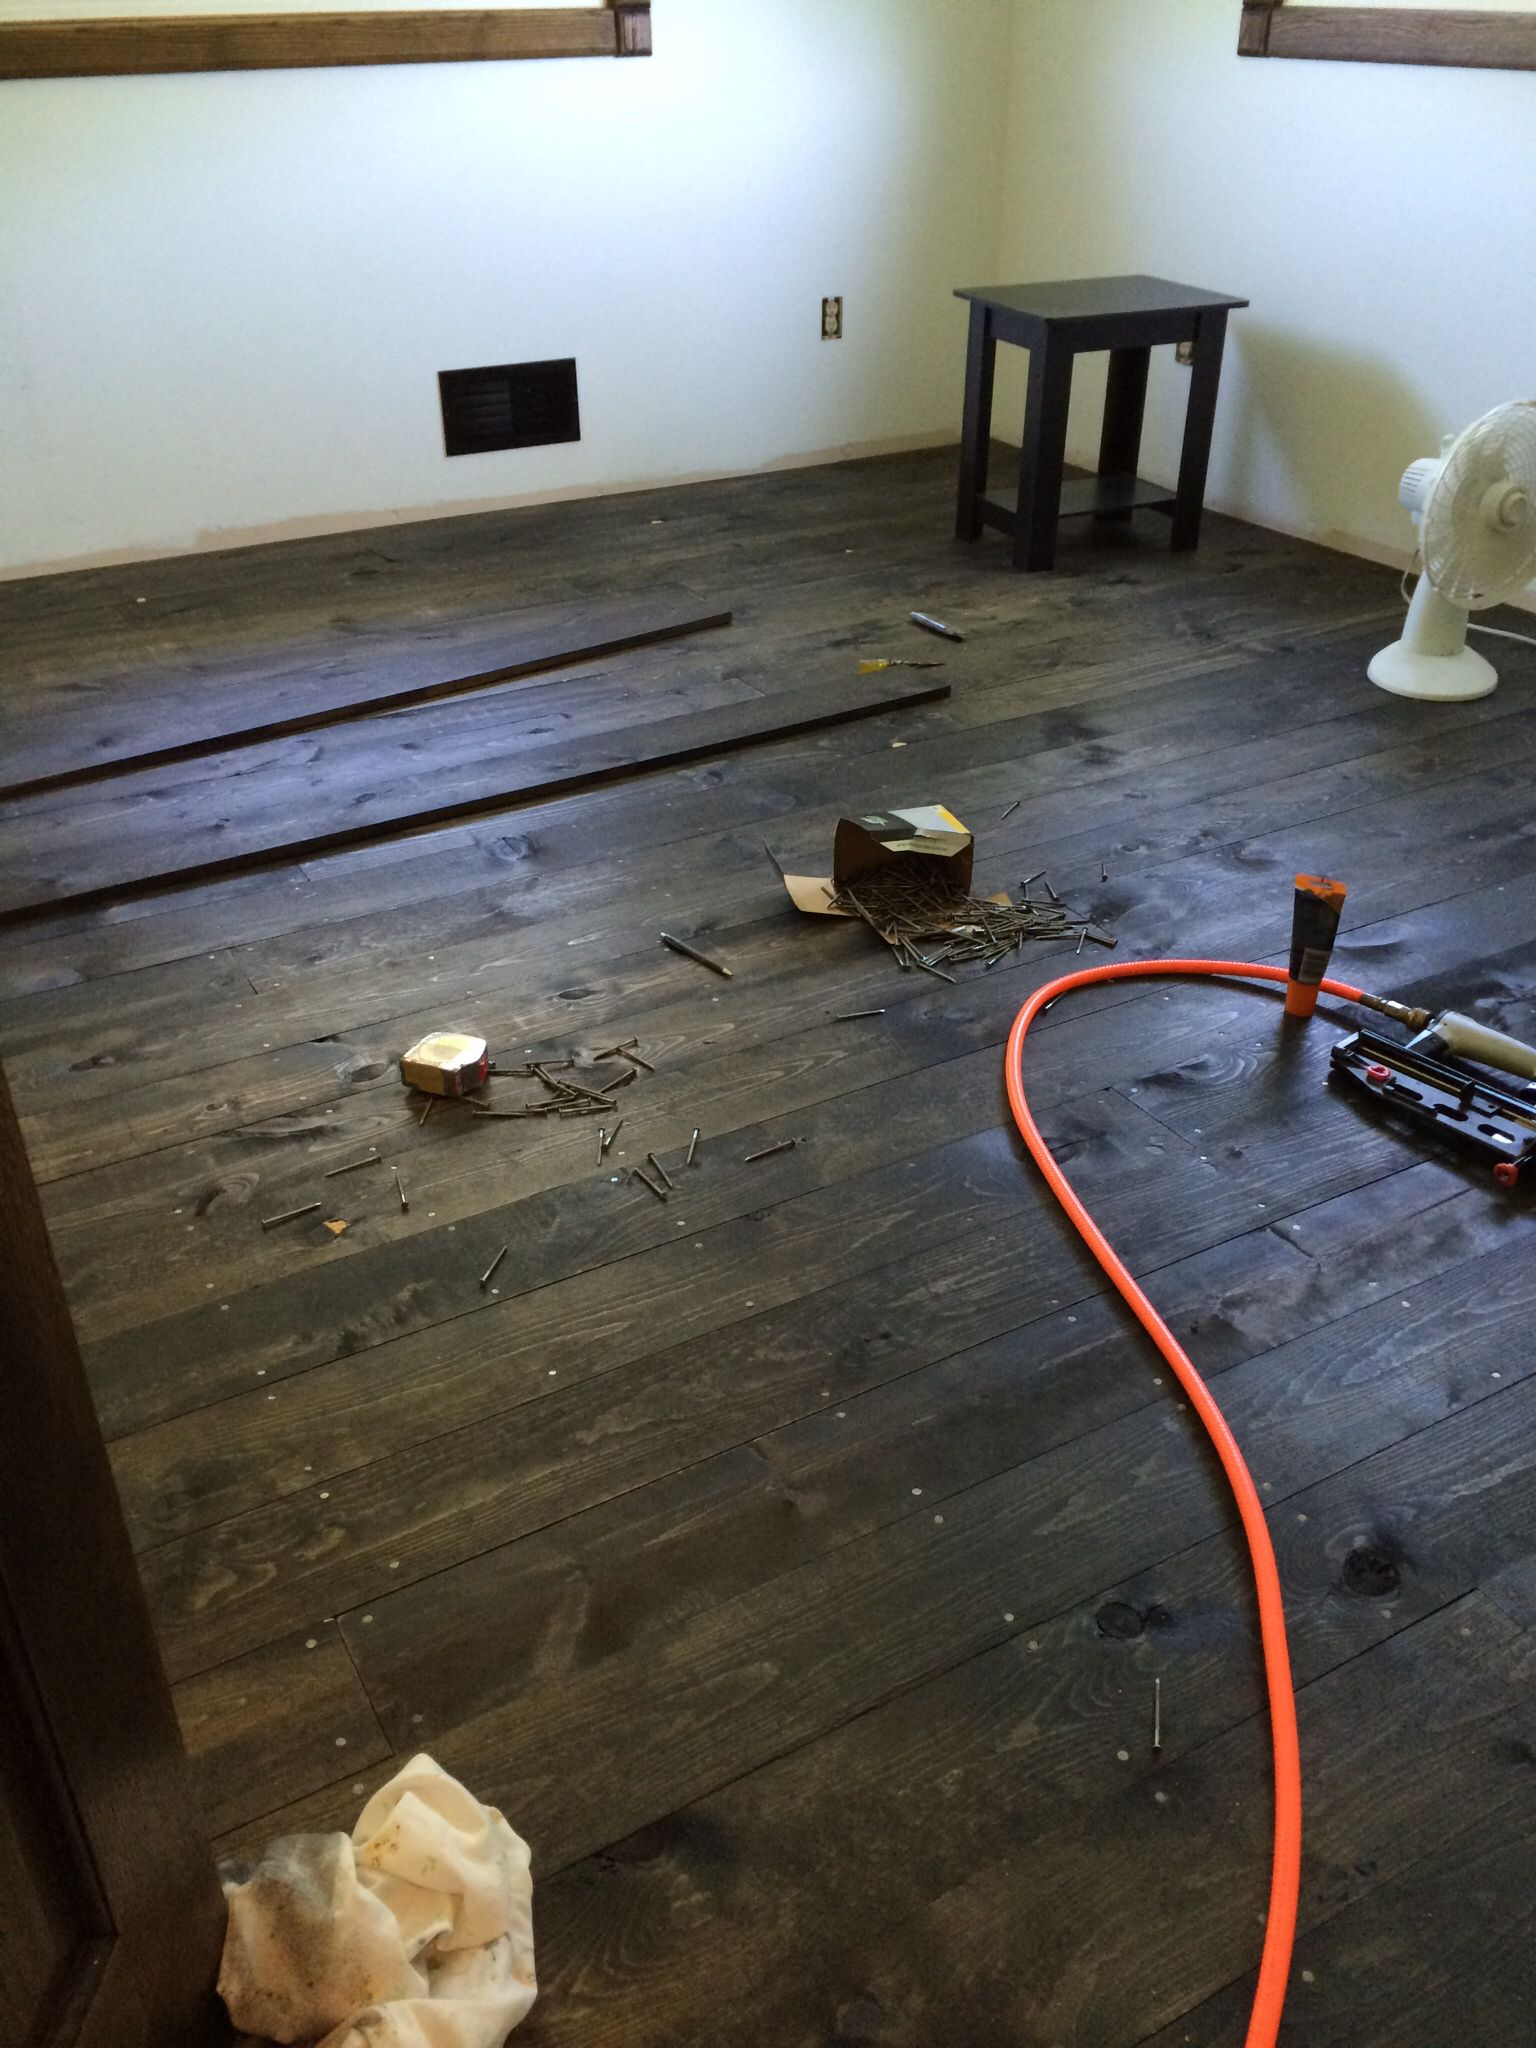 New Hardwood Floors Made Out Of 1x6 Pine Boards For Our Sons Room Hardwood Floors House Design Yellow Houses